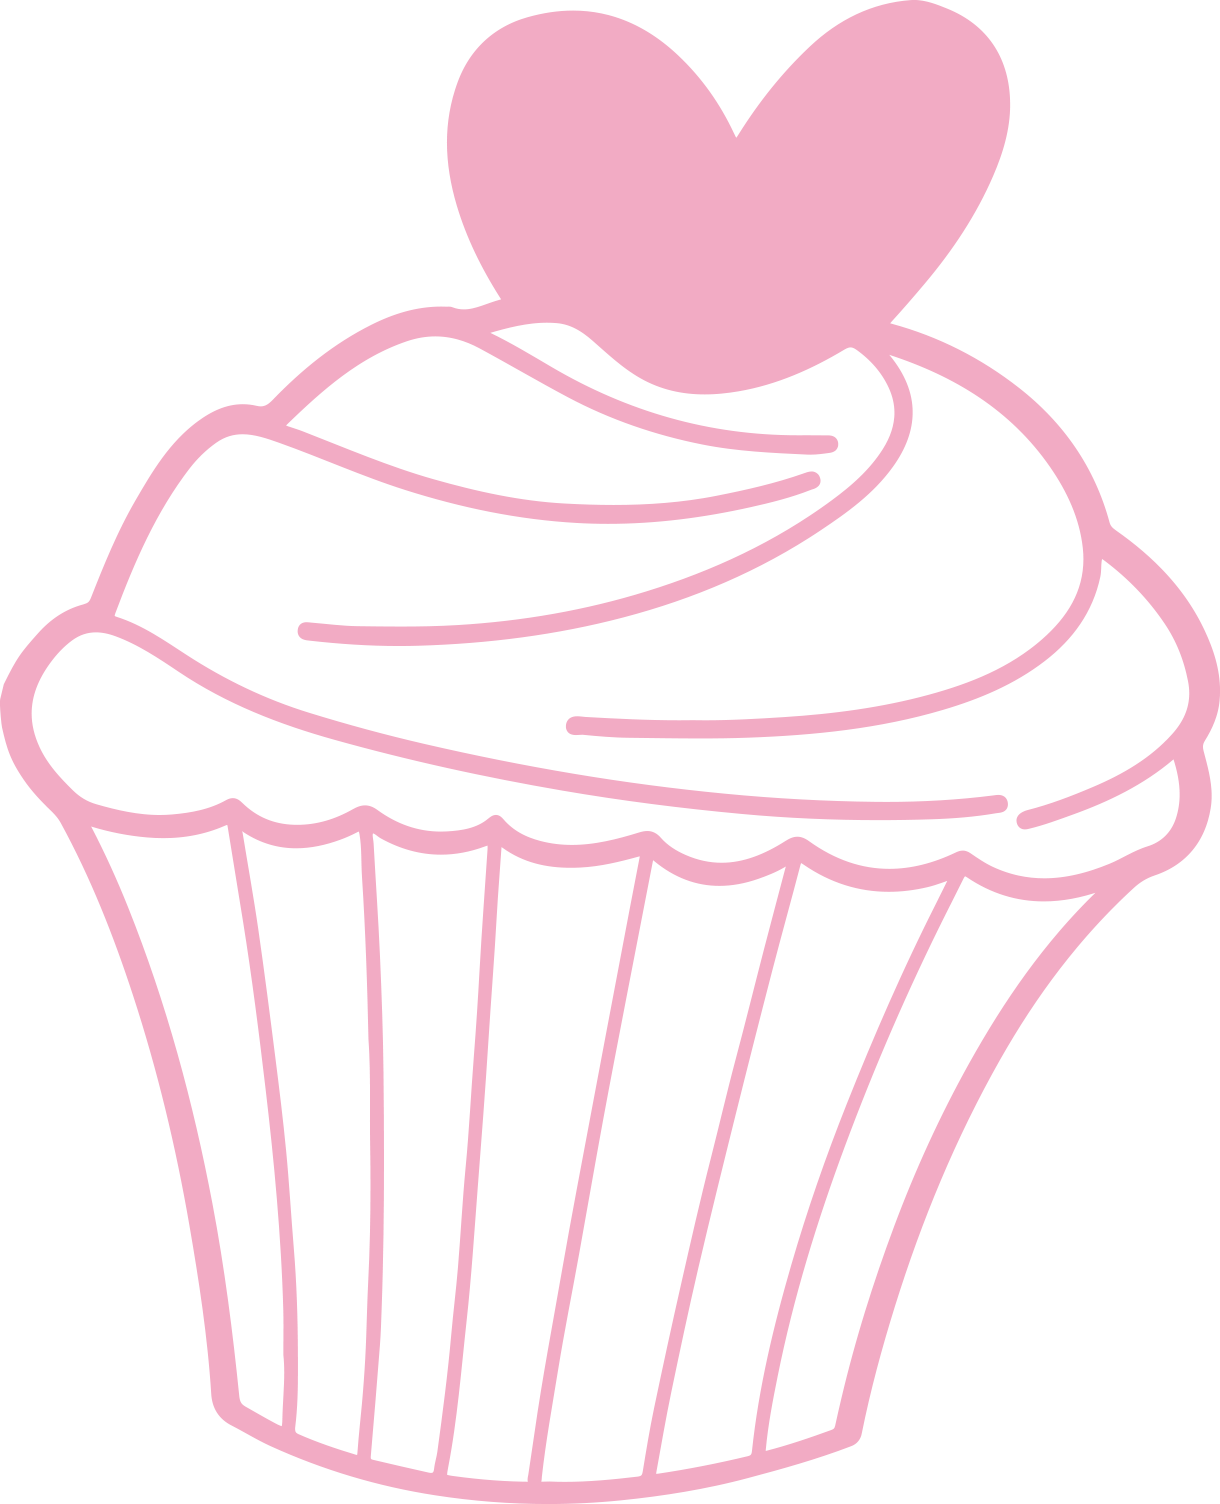 black and white library Pink baking cup cupcake. Muffins clipart elegant